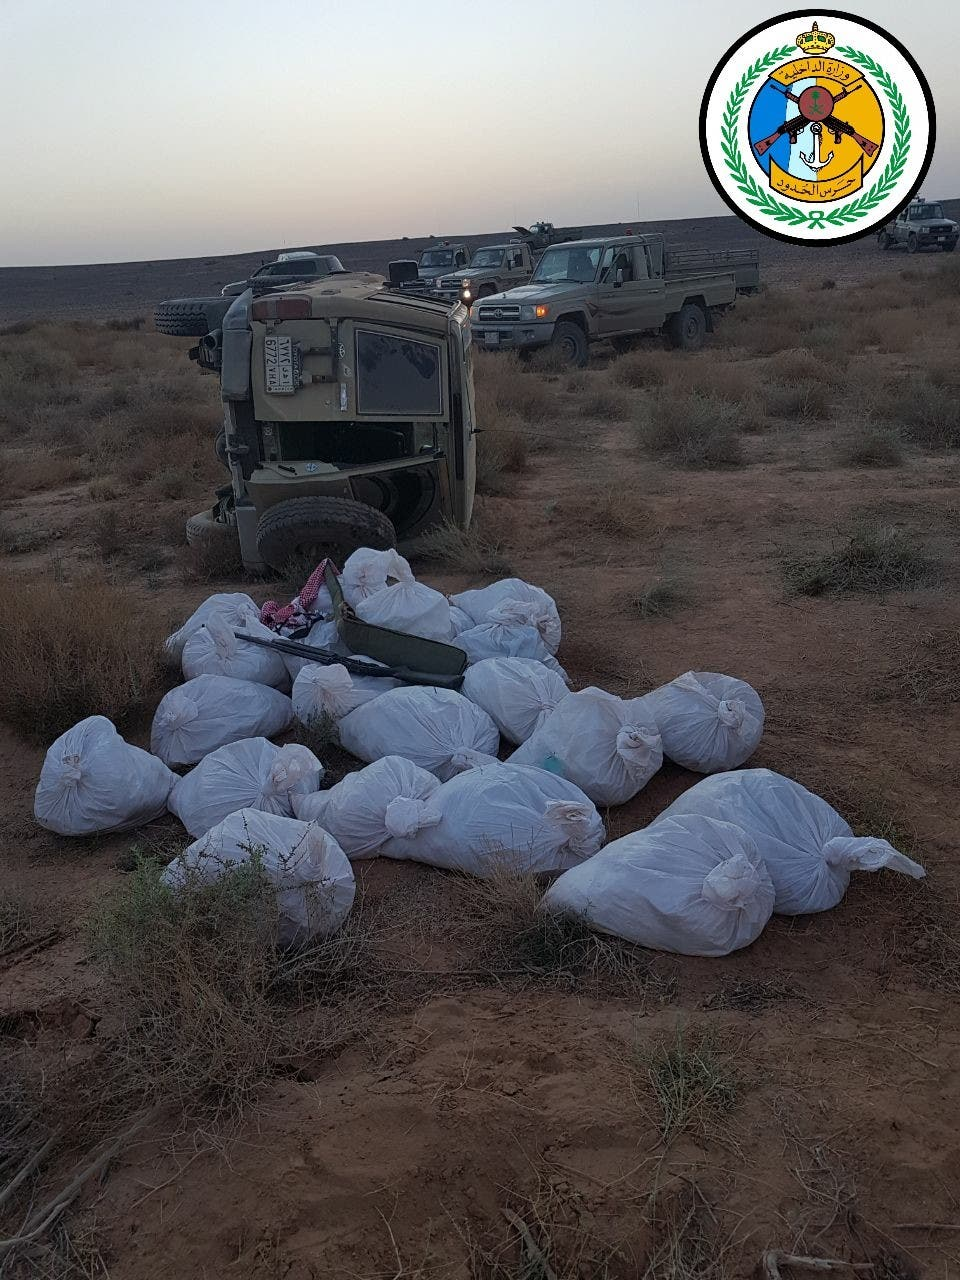 Saudi border police thwart smuggling attempt of 2 mln Captagon pills in al-Jawf